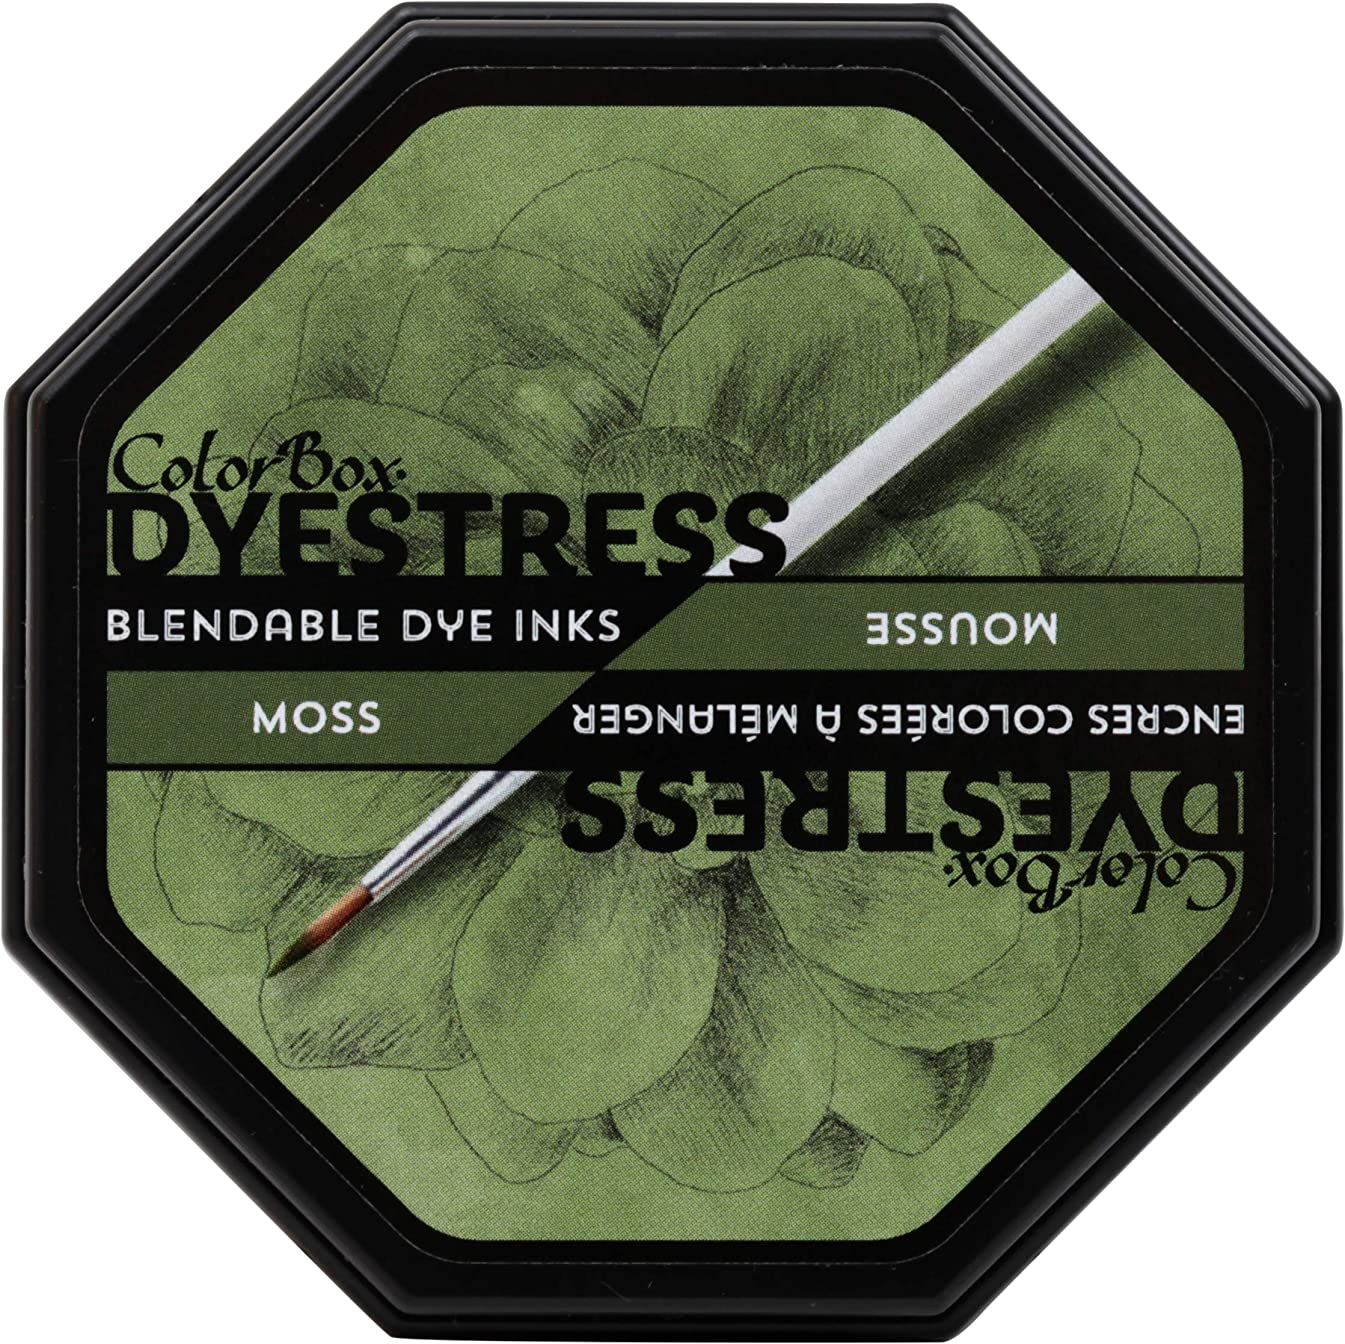 ColorBox 23120 DyeStress Inkpad Moss,